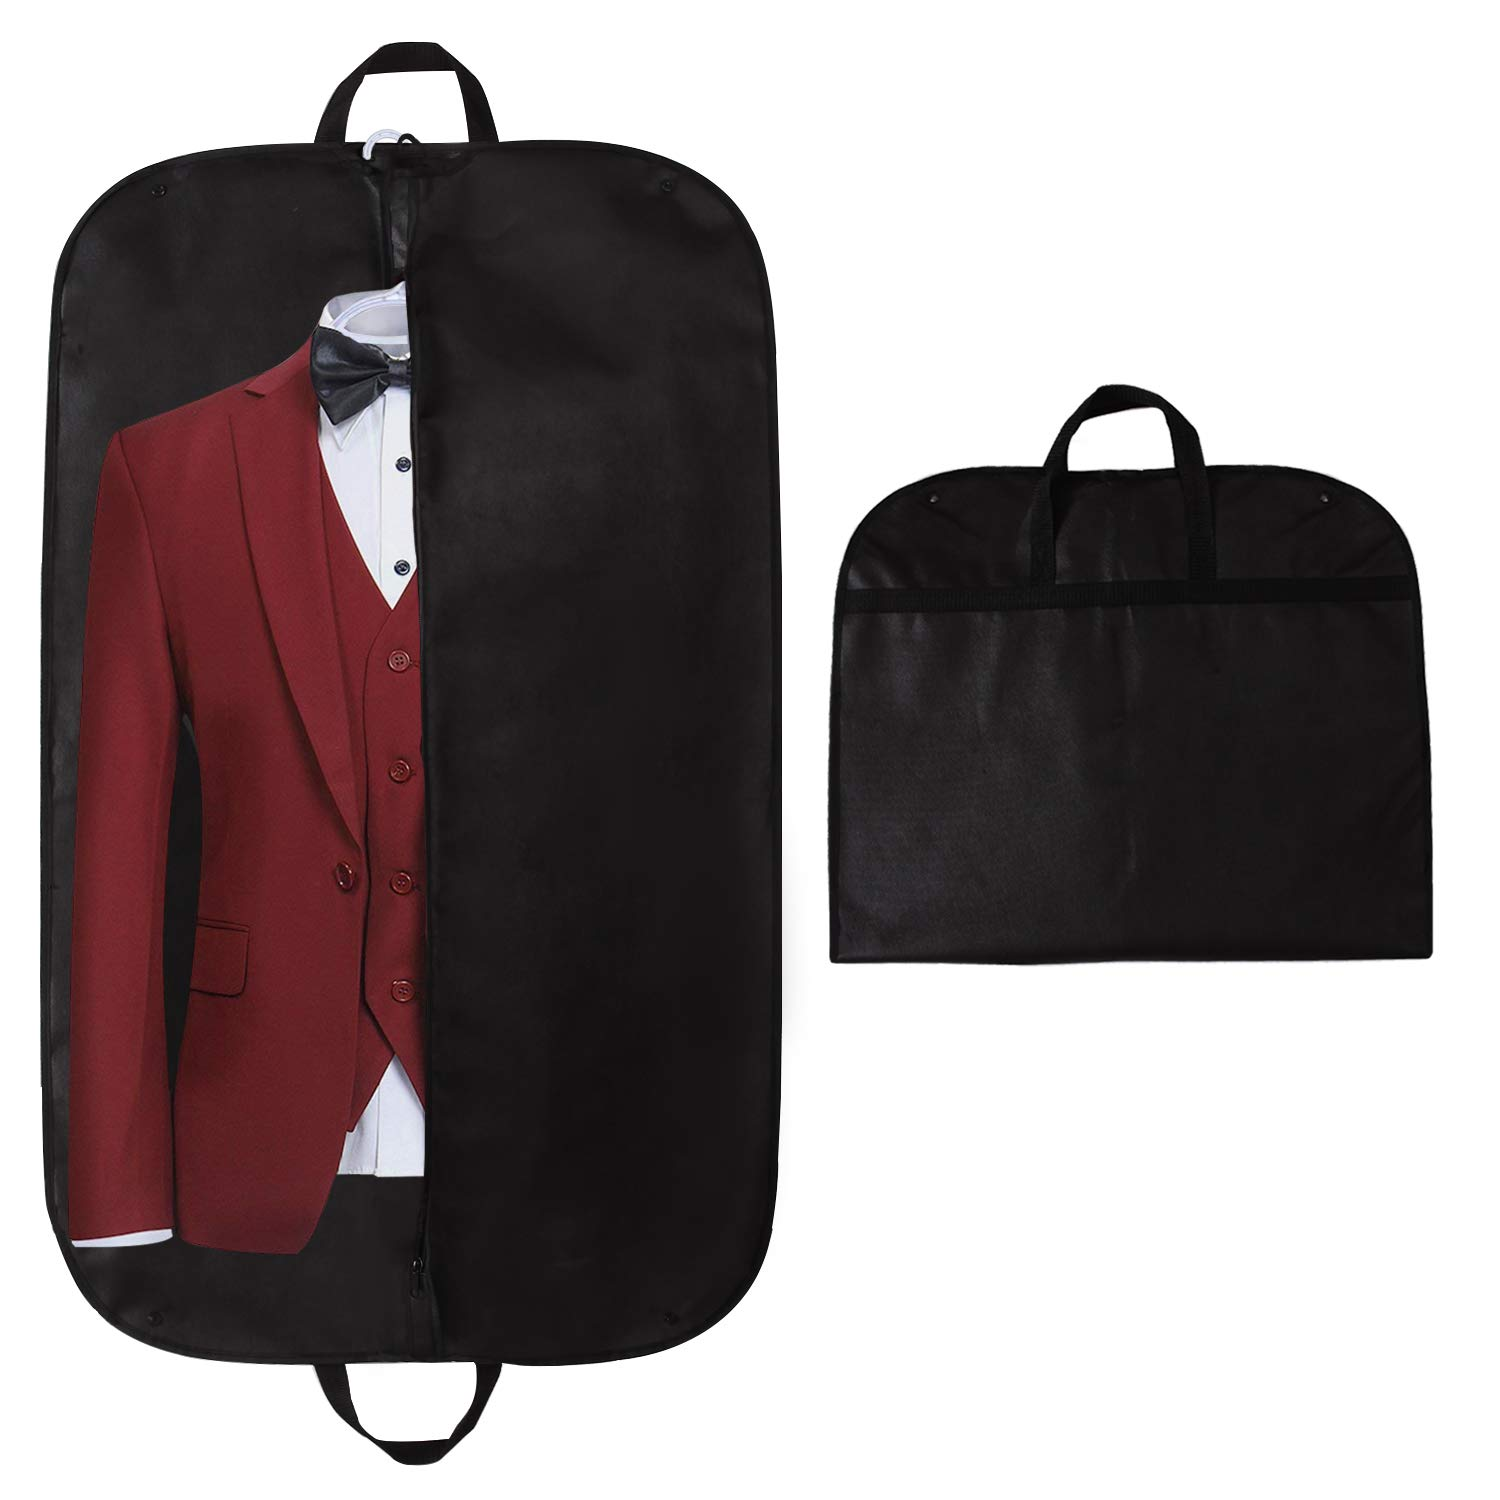 2 x Quality Suit Garment Carrier Breathable Clothes Protector Travel Storage Bag